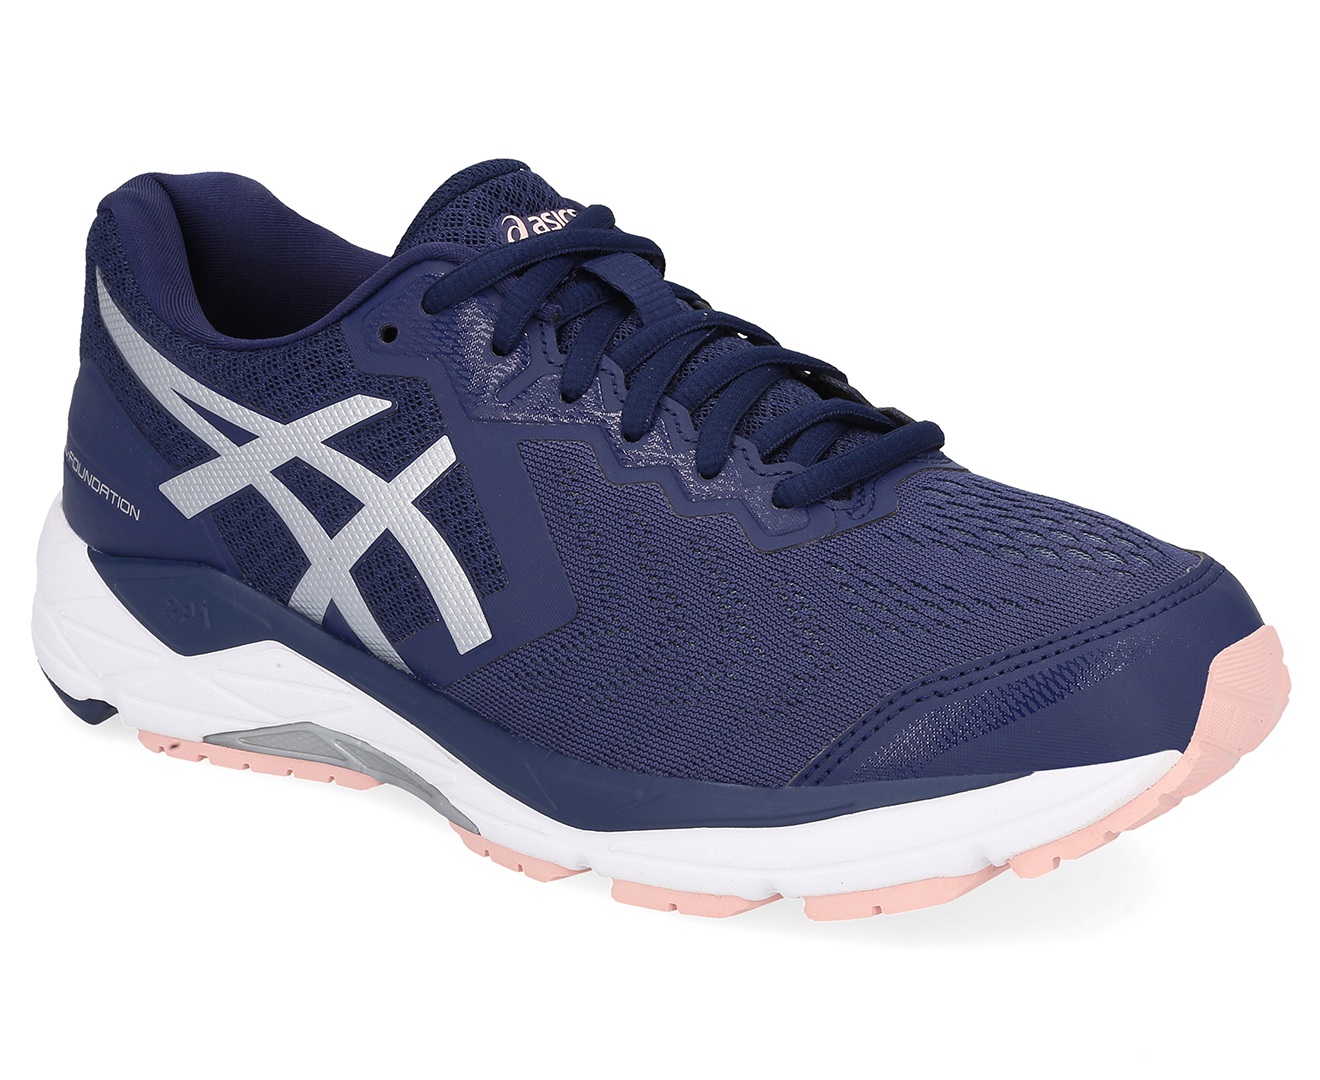 619ba763cd833 Details about ASICS Women's GEL-Foundation 13 Wide Fit Shoe - Indigo  Blue/Silver/Seashell Pink